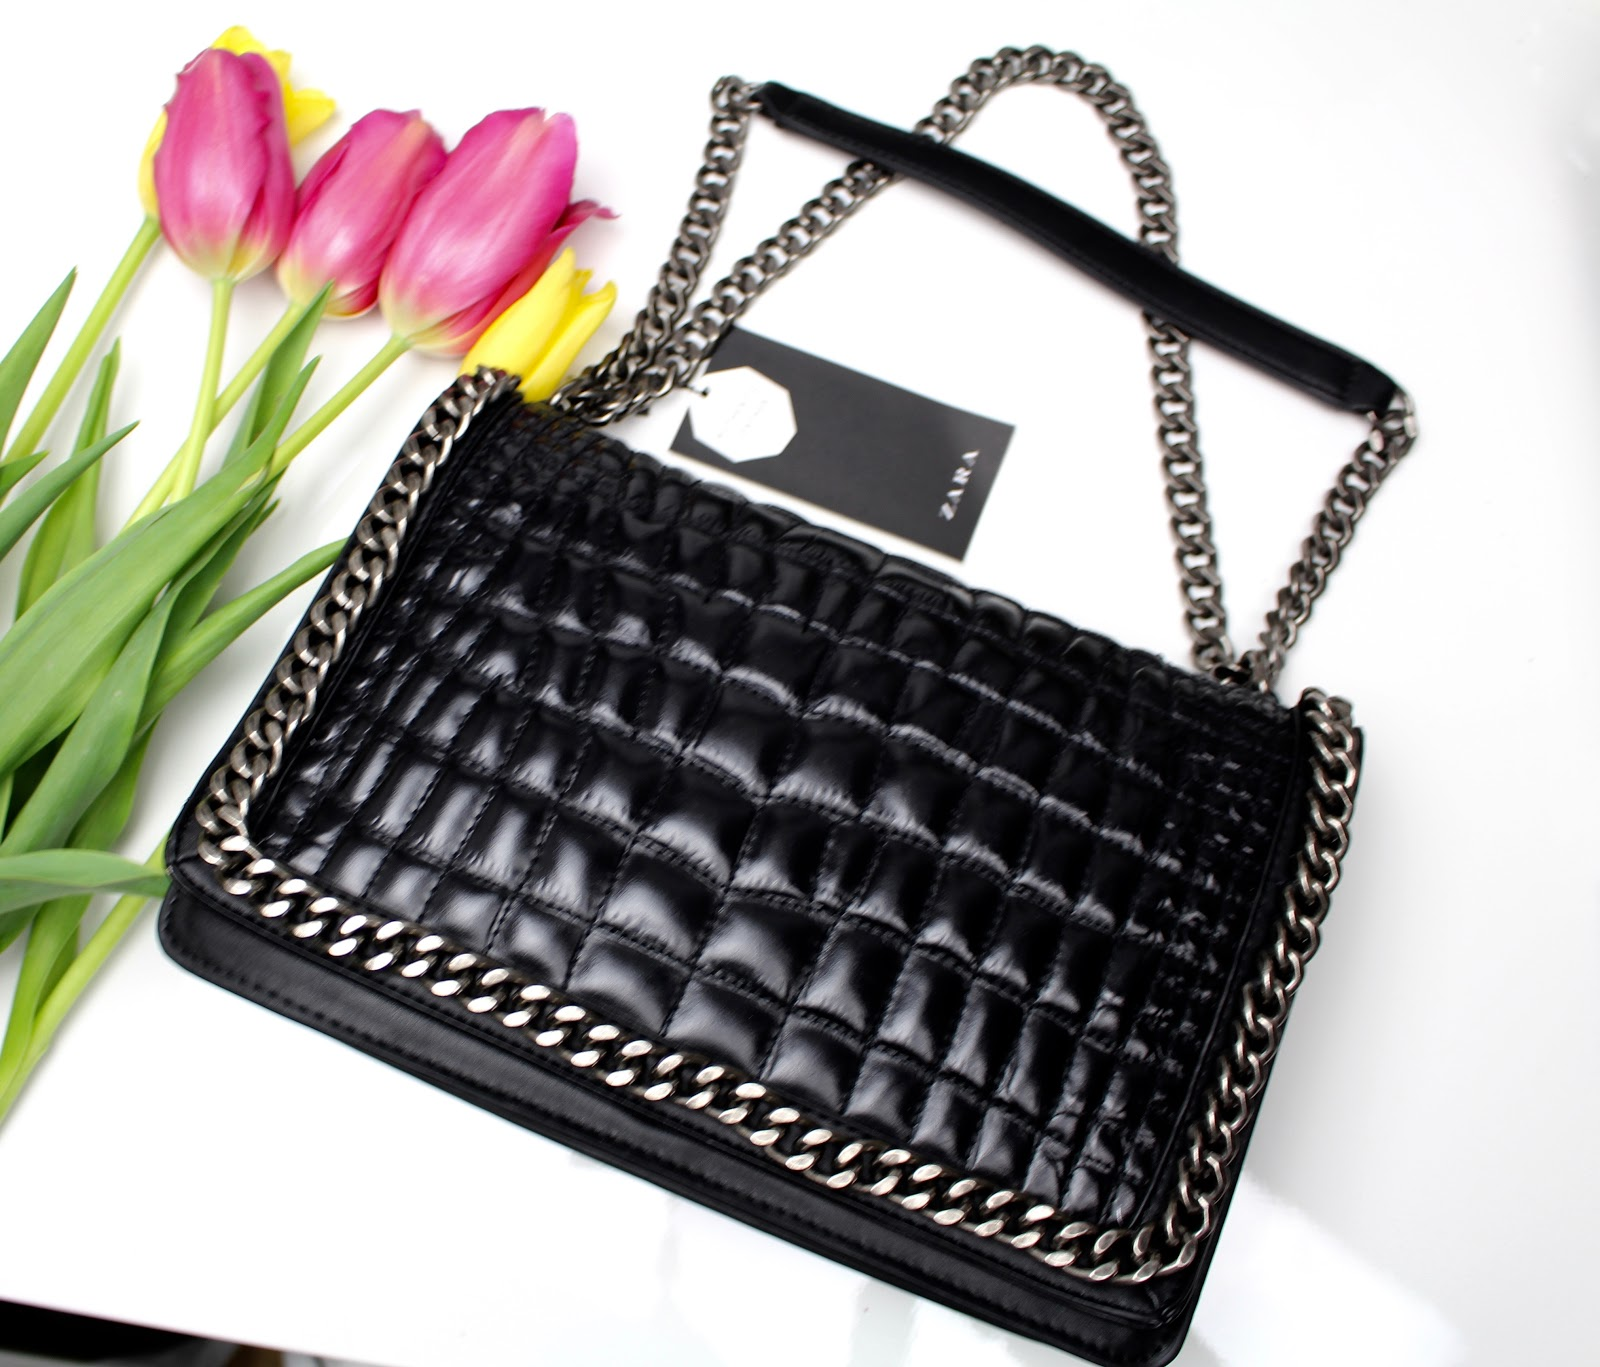 9b3bb5629d I always wanted to have a CHANEL BOY BAG but it's way too expensive so  here's a very good dupe for it. This black embossed Chain-City-Bag is made  of real ...